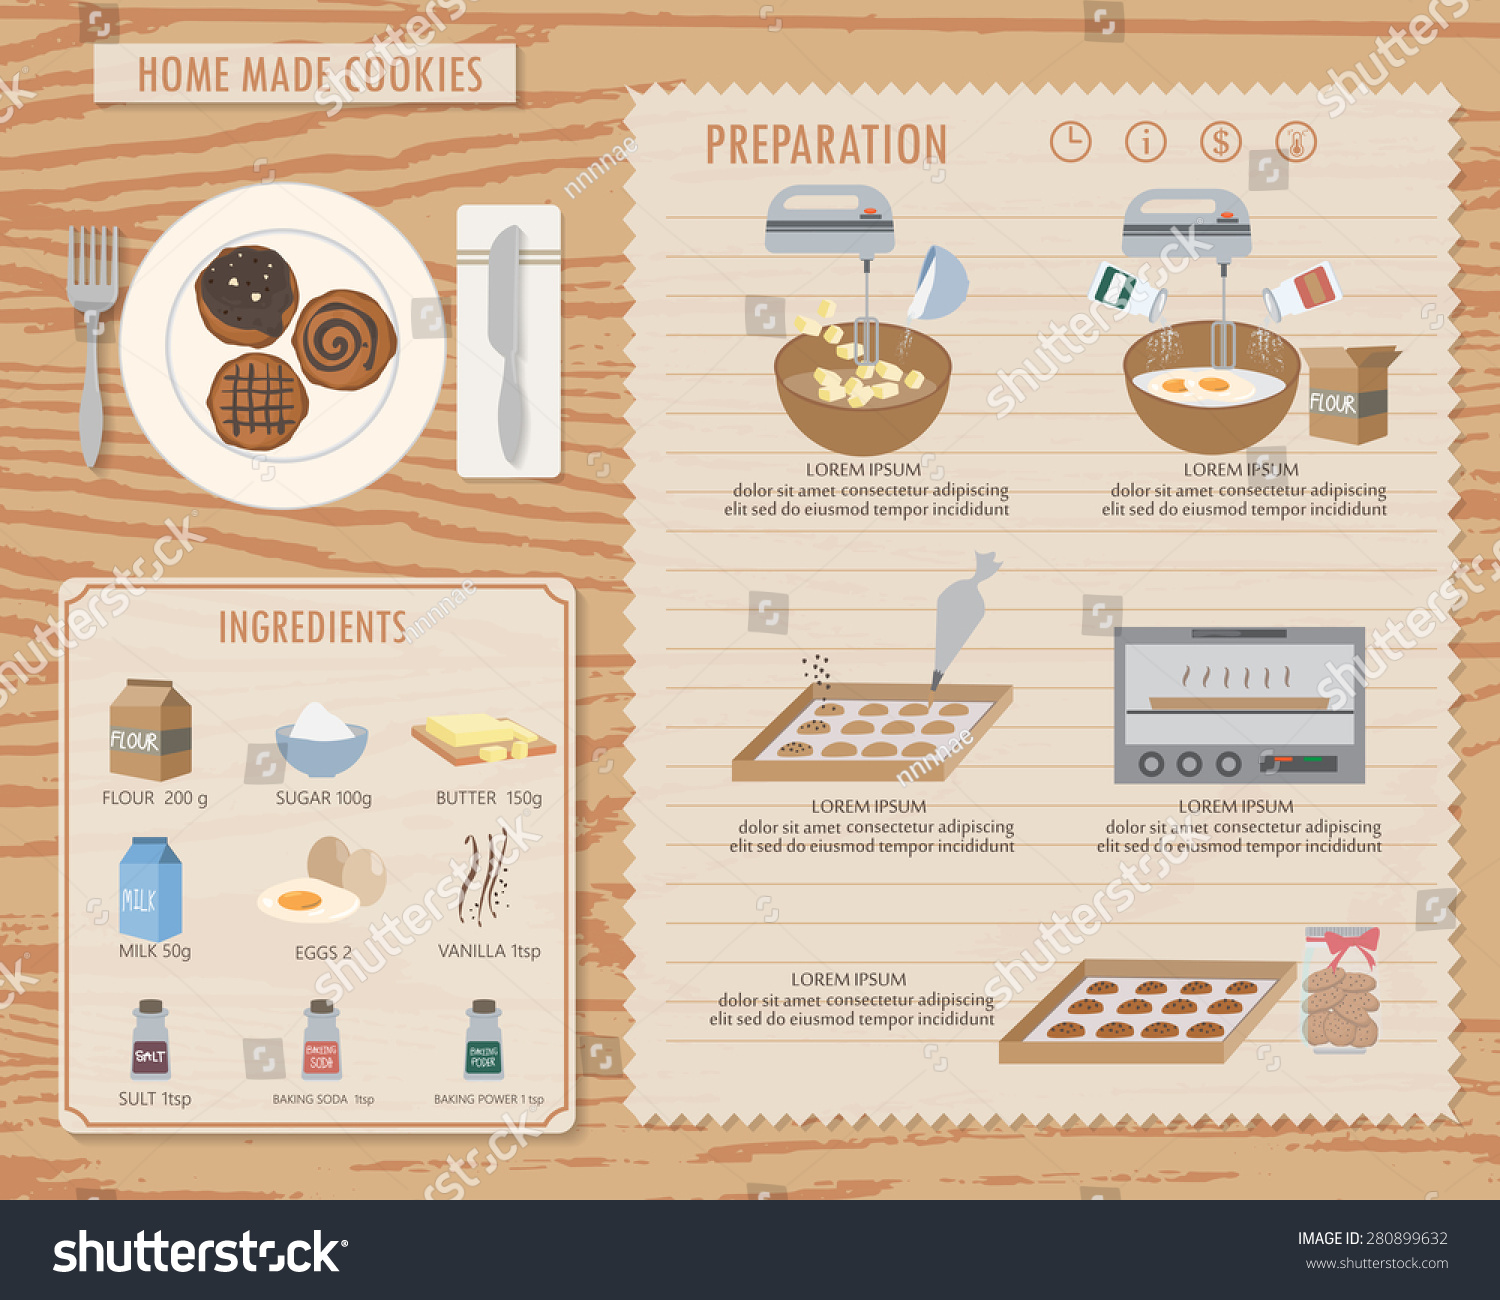 How Make Home Made Cookies Food Stock Vector 280899632